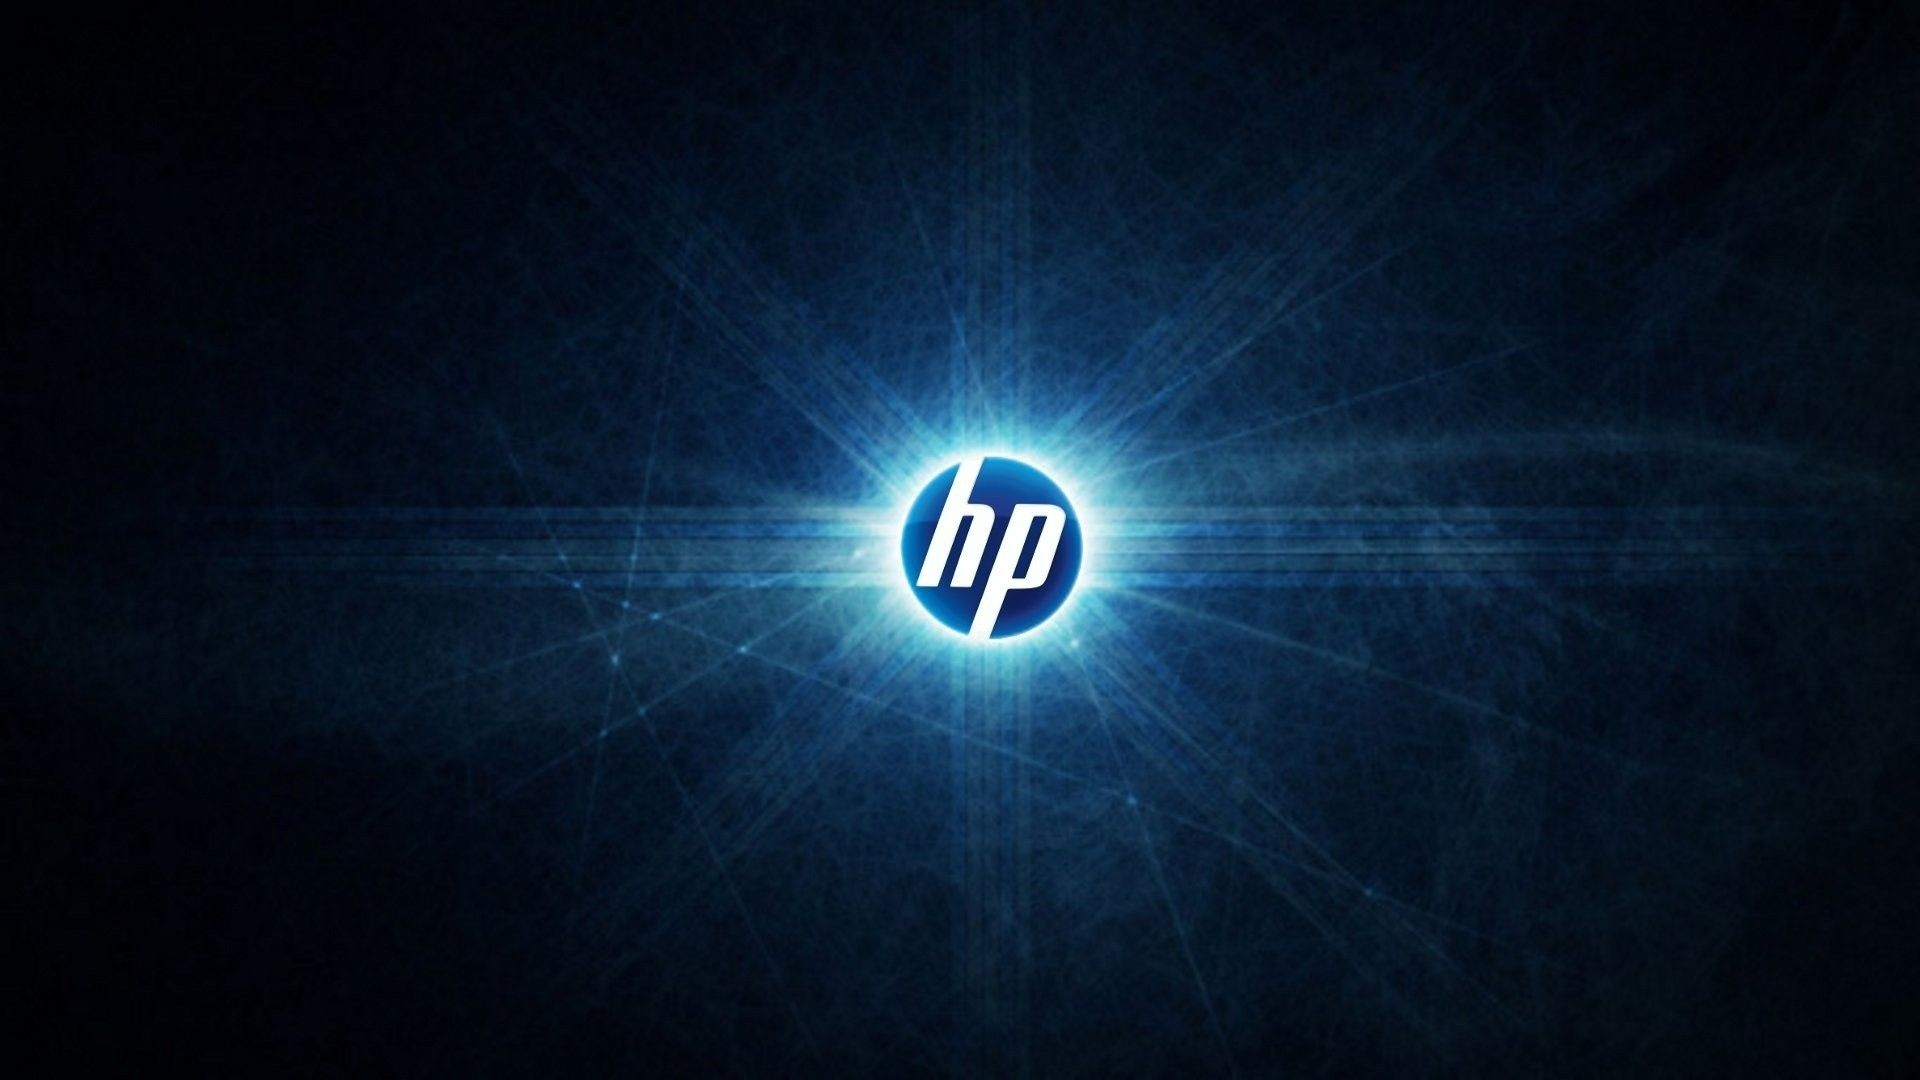 Hp Wallpapers Hd 1080p 69 Images